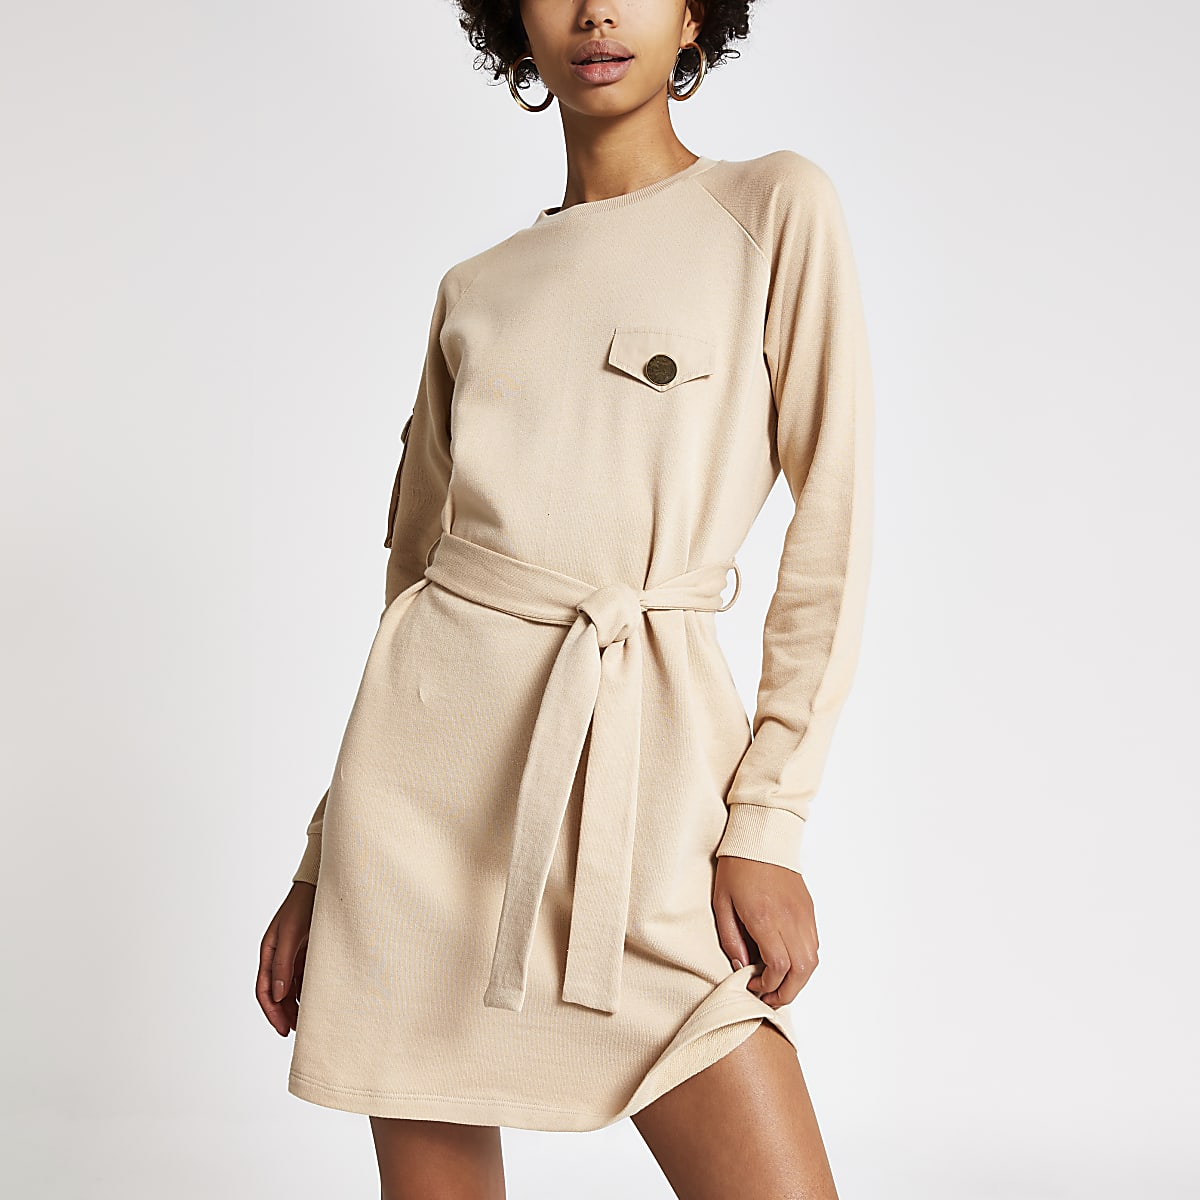 Beige tie waist utility sweatshirt dress